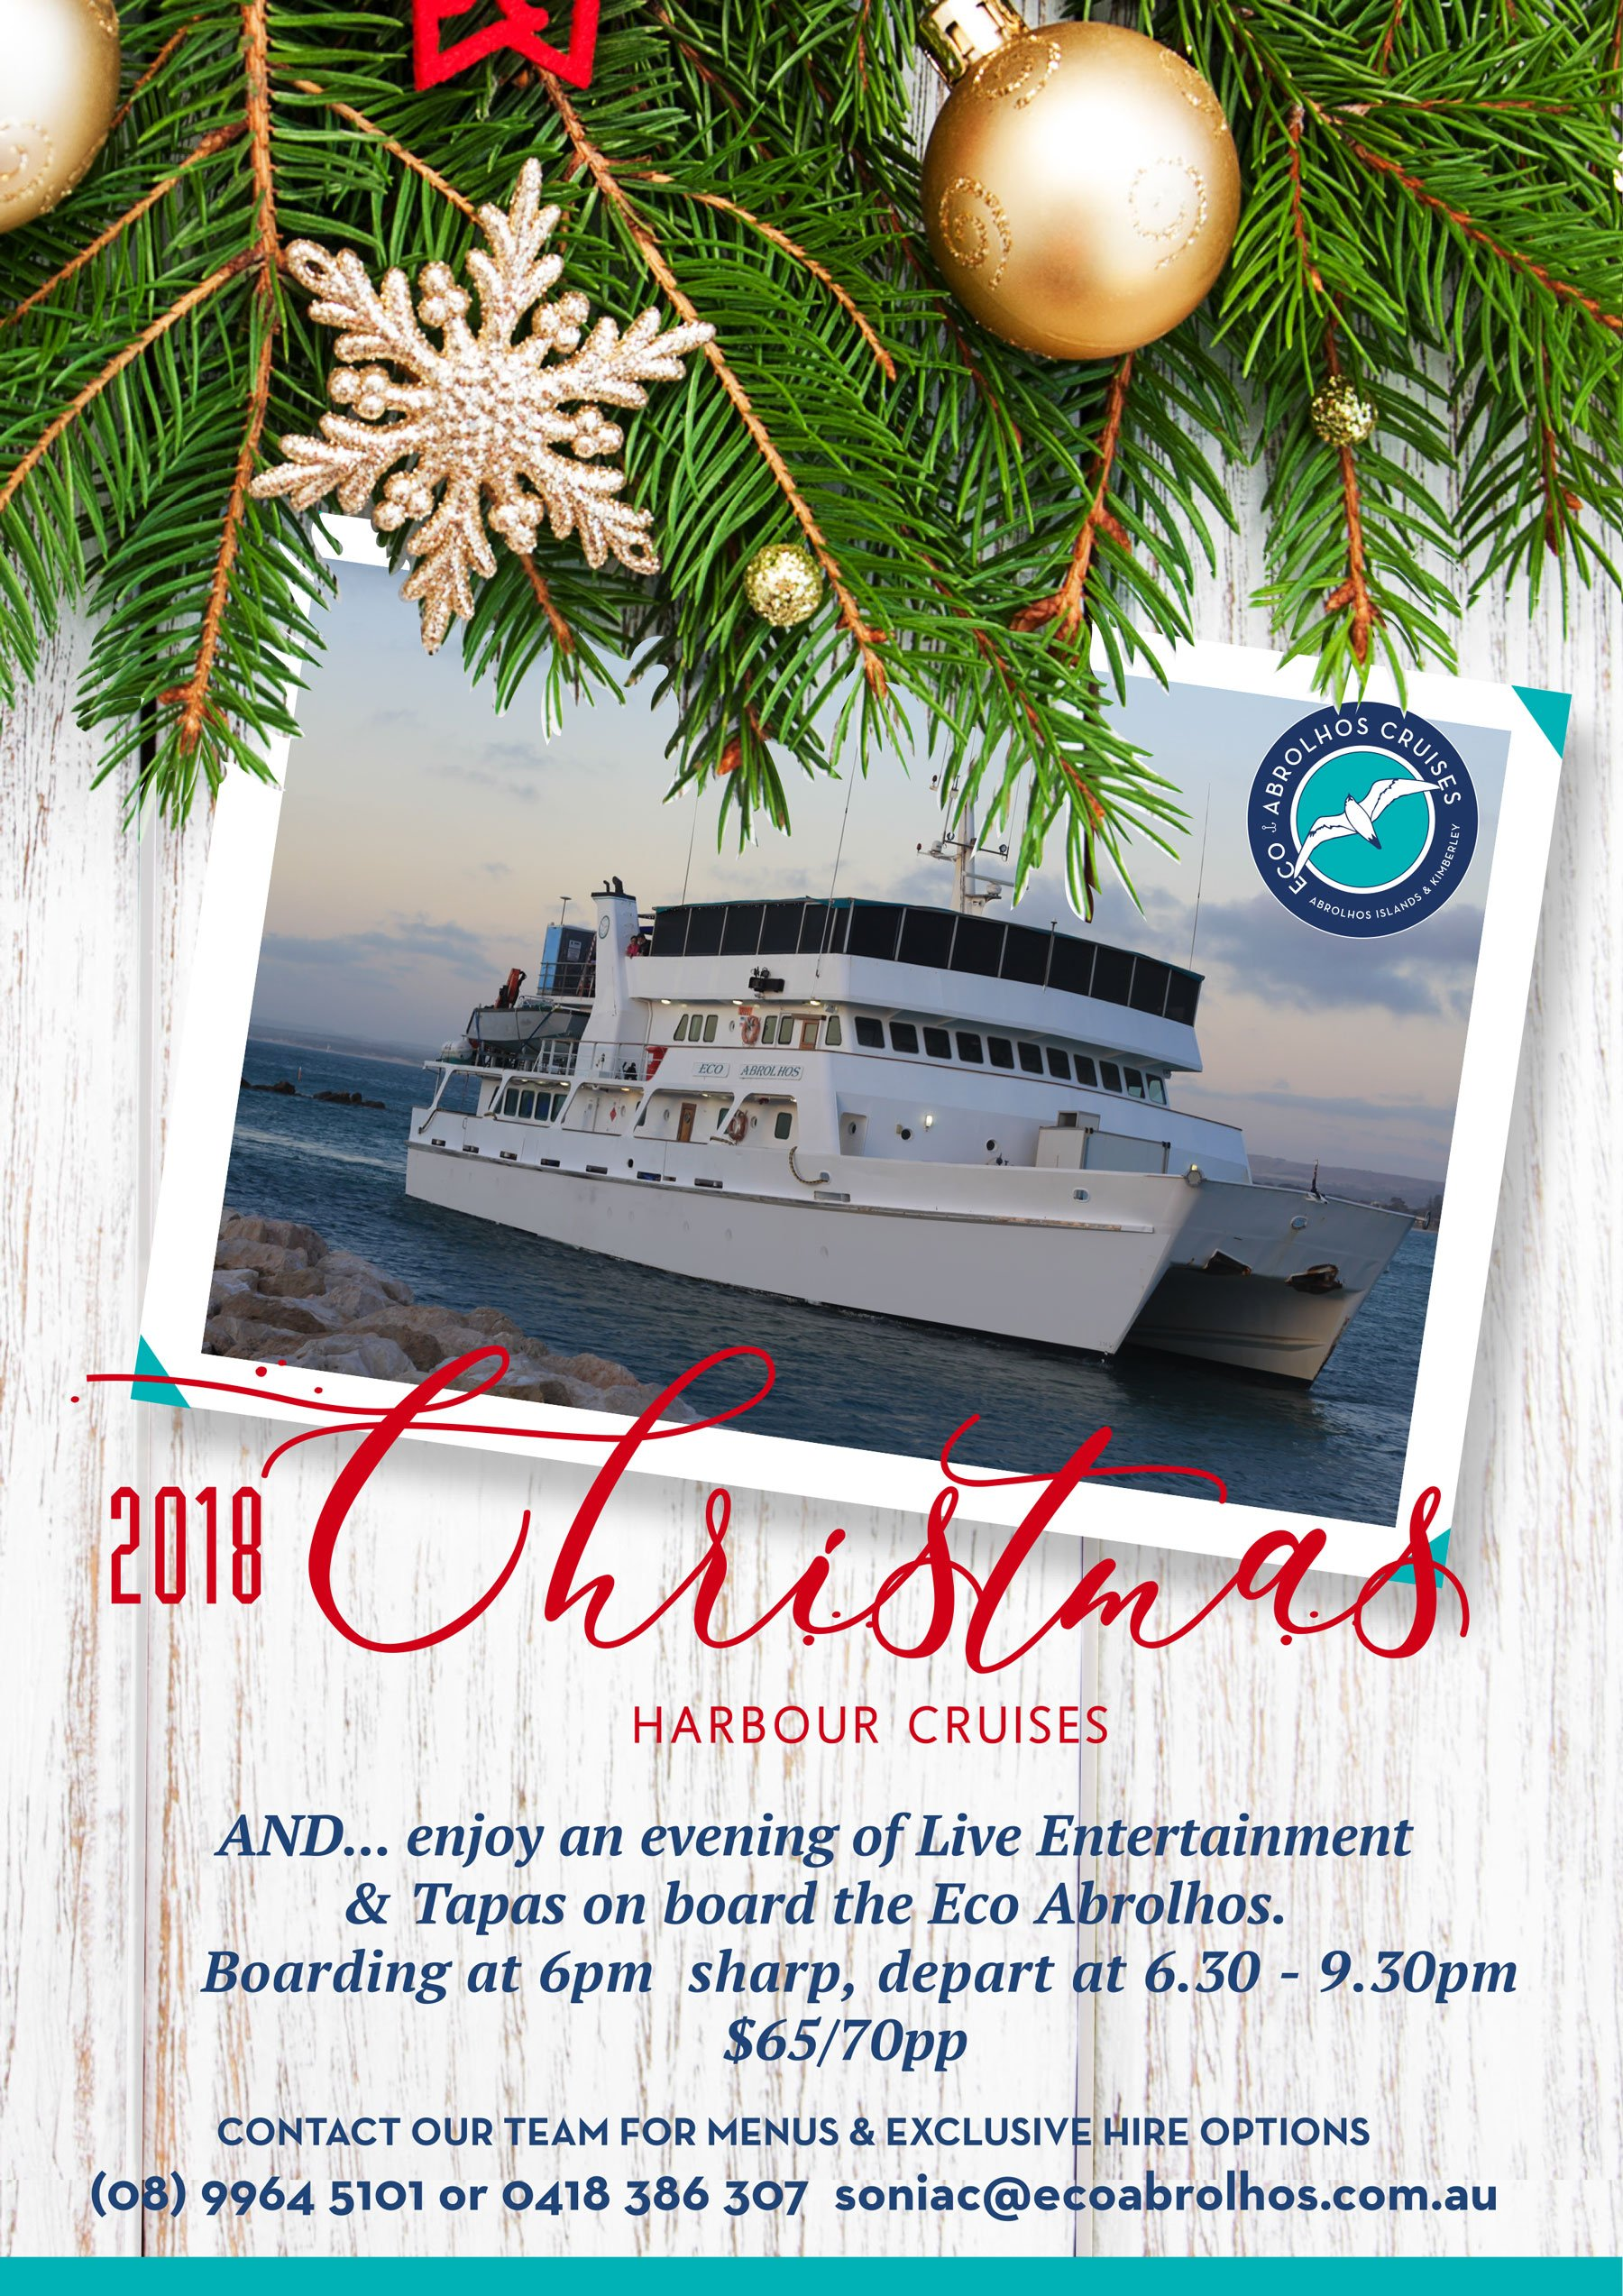 2018 christmas harbour cruises christmas fir tree with decoration on a wooden board - When Do Cruise Ships Decorated For Christmas